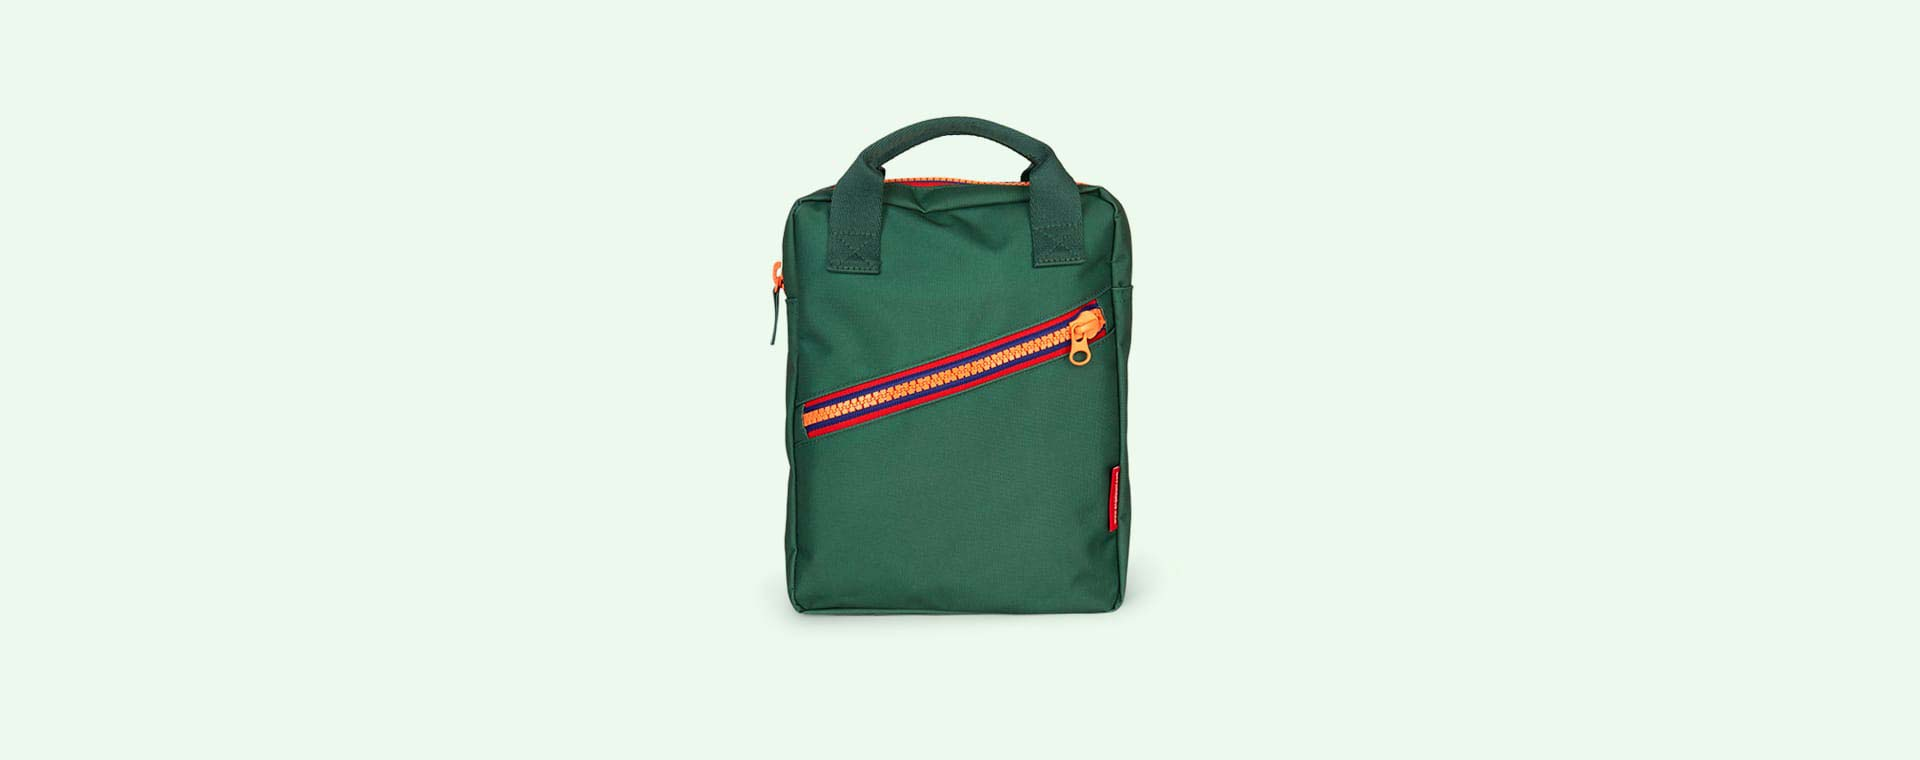 Green Engel Zipper Backpack